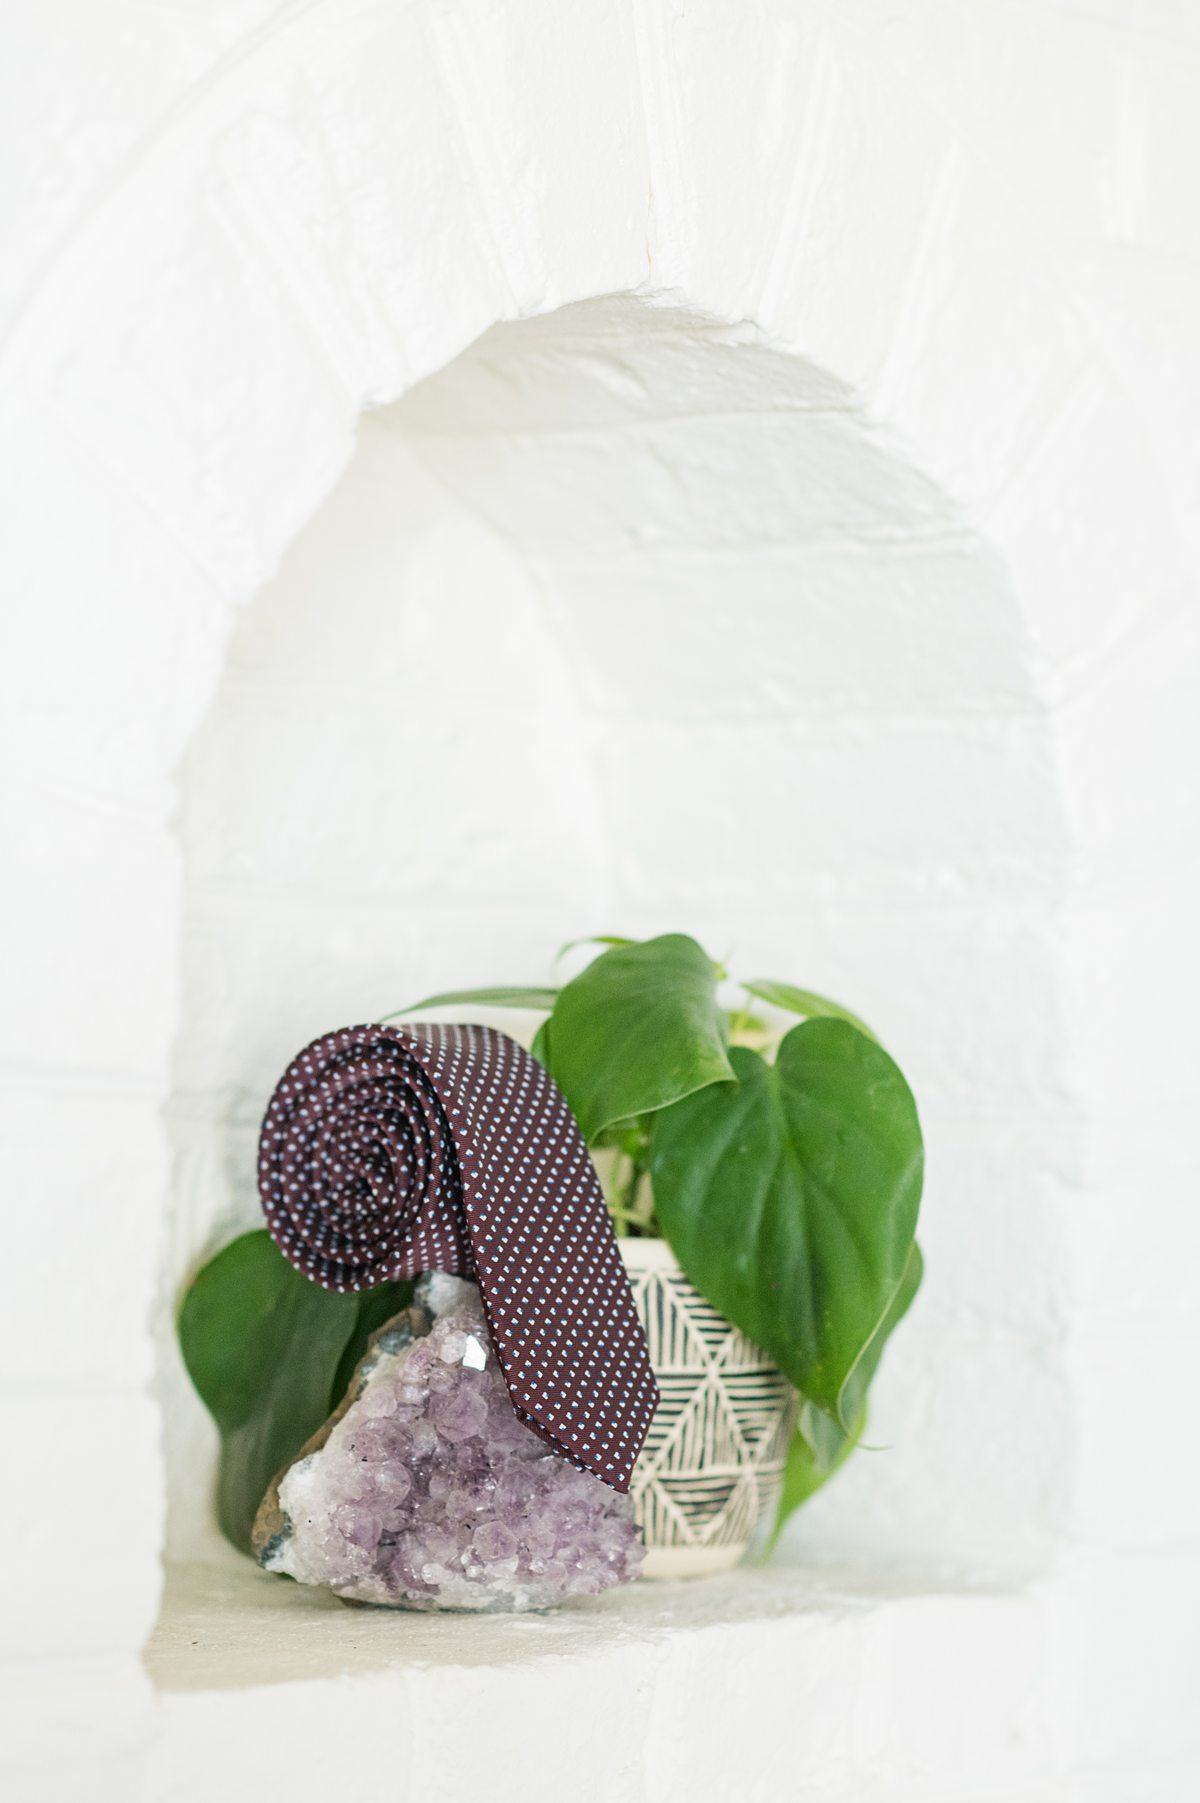 Purple tie rolled up next to a green plant and piece of purple amethyst gemstone.